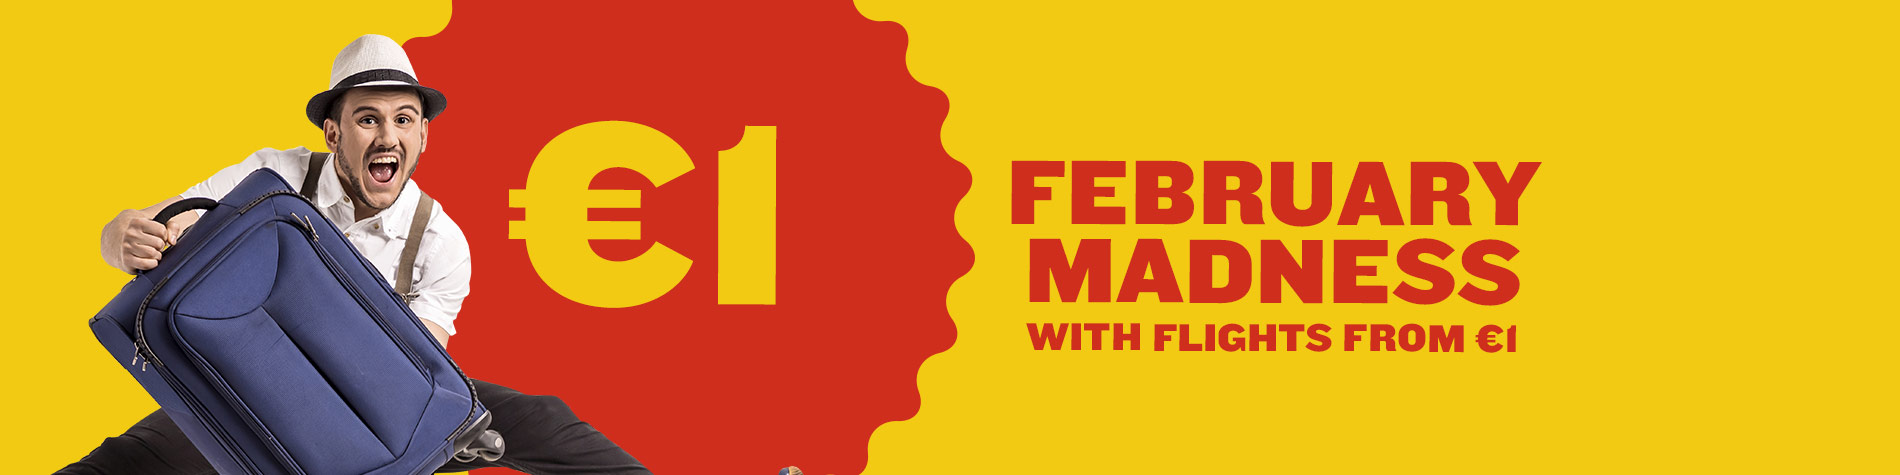 Ryanair S February Madness 1 Flights Across All Europe